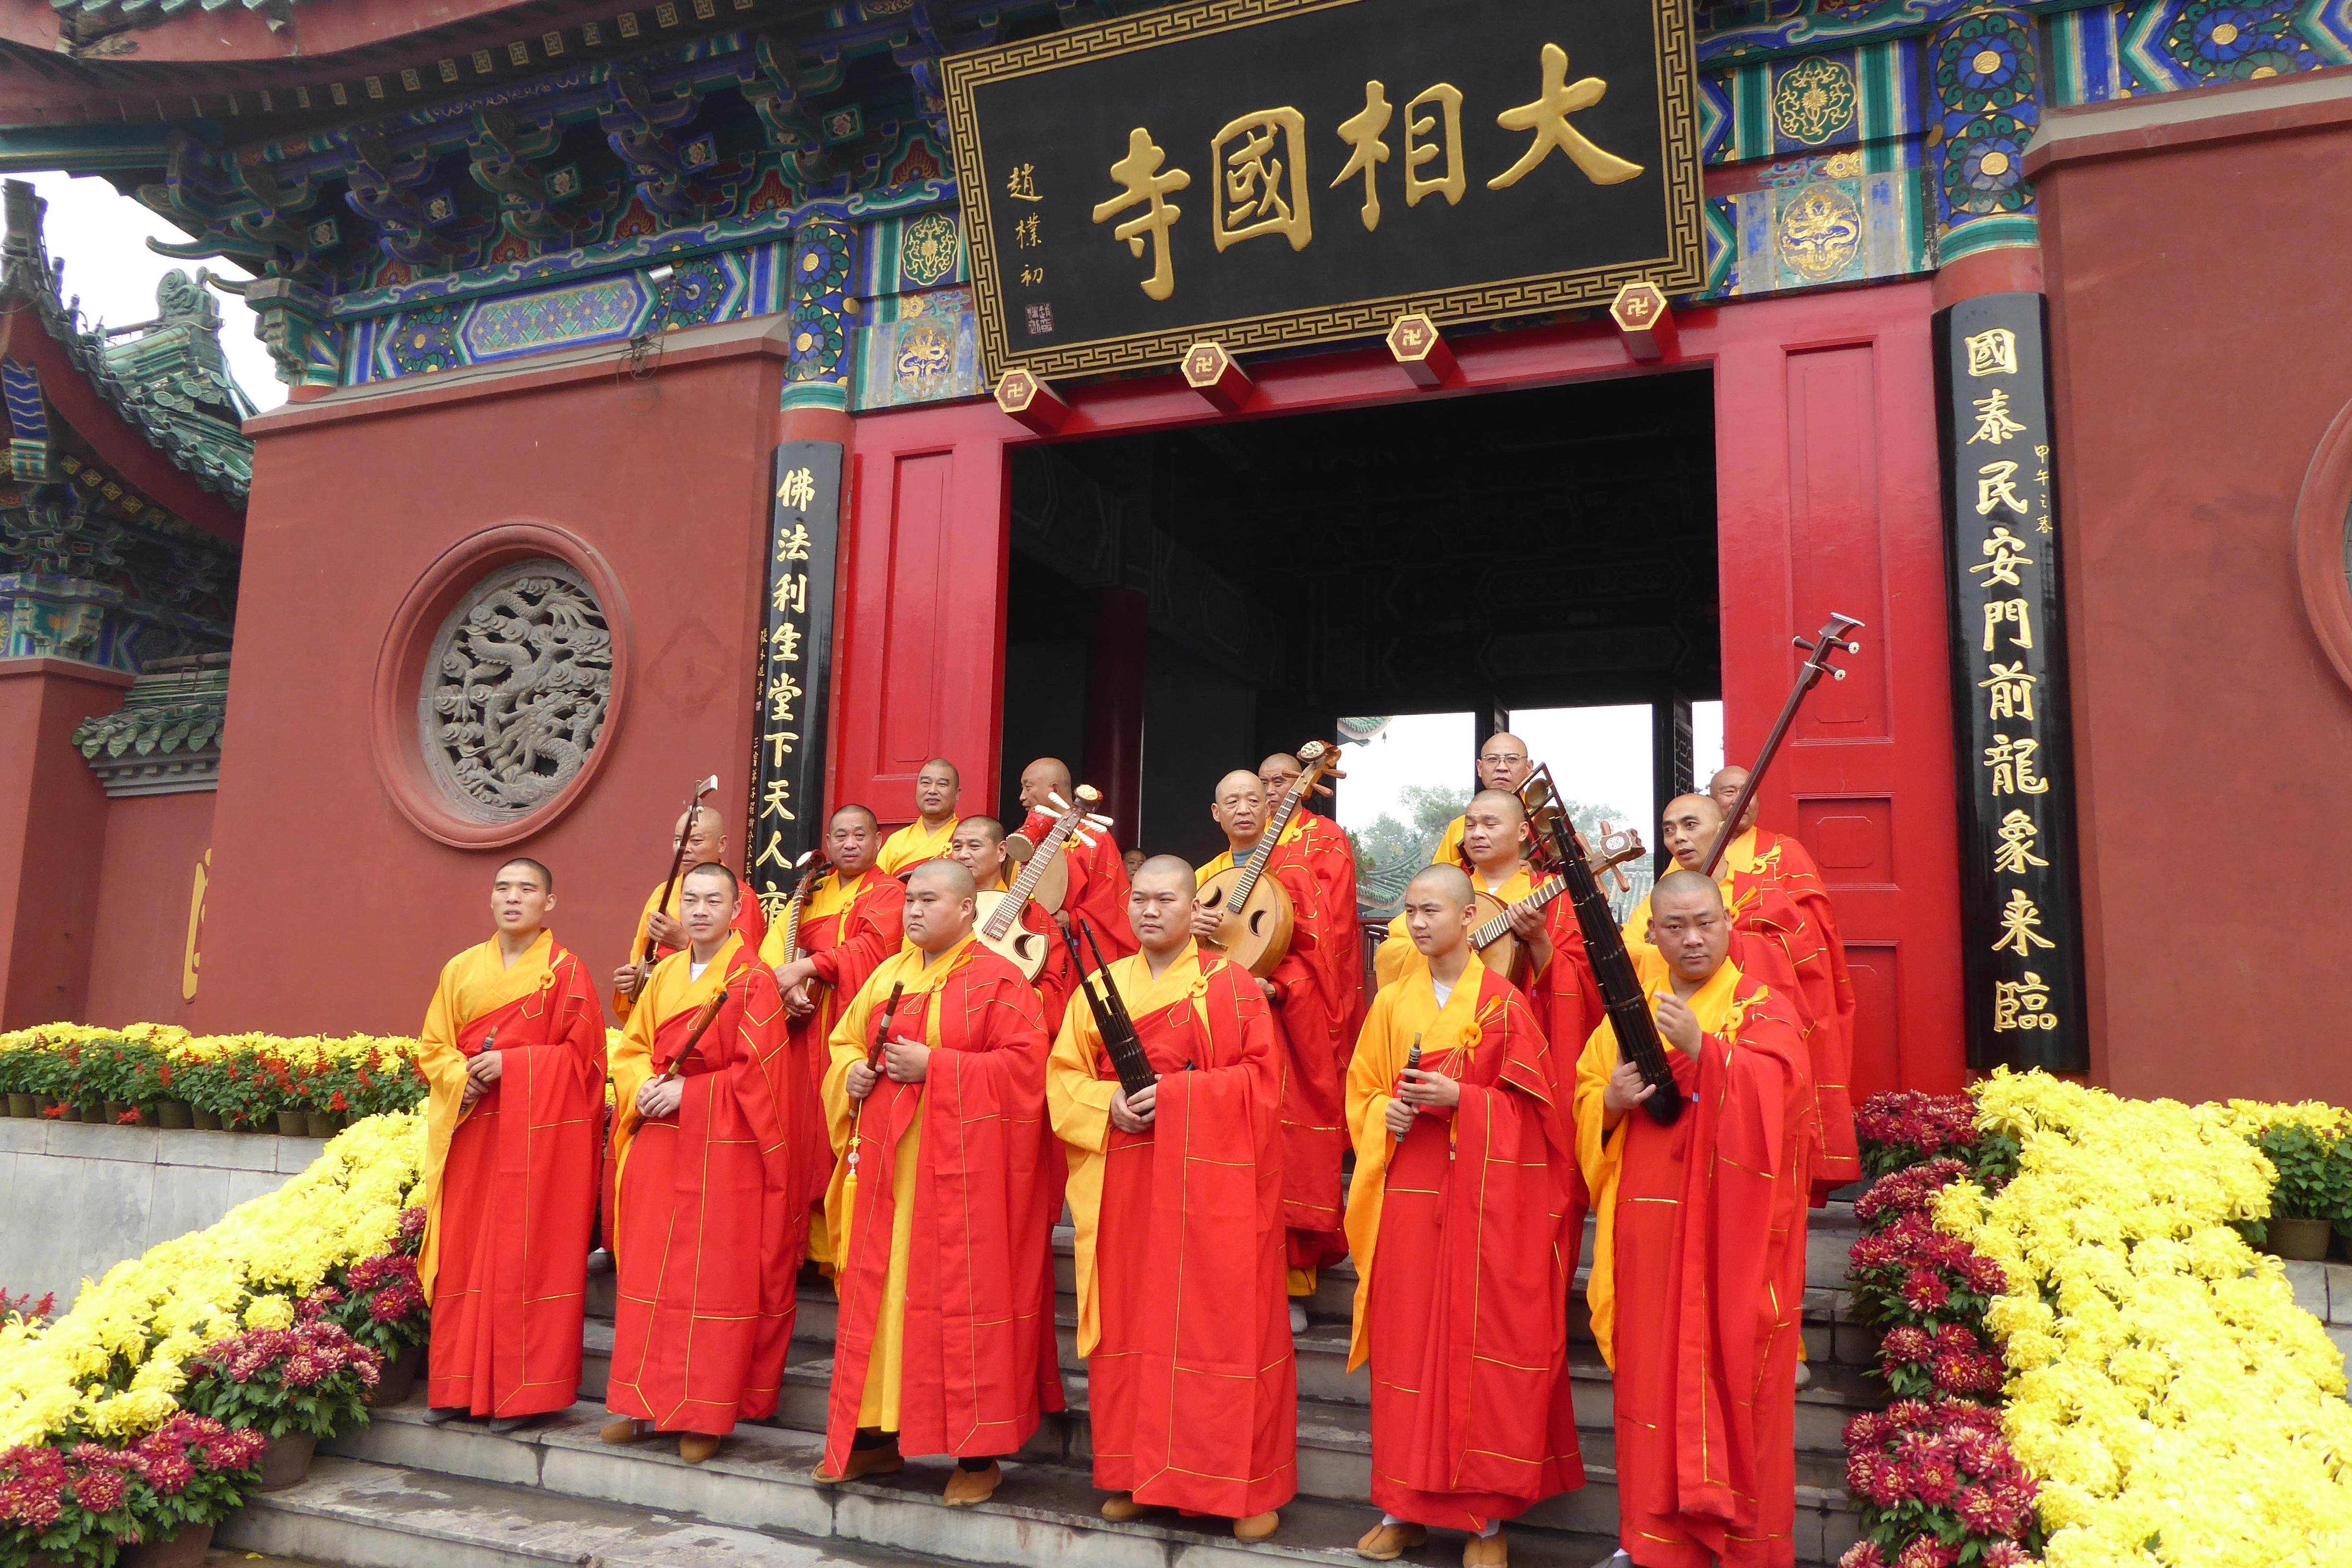 Buddhist orchestra at Daxiangguo monastery in Kaifeng